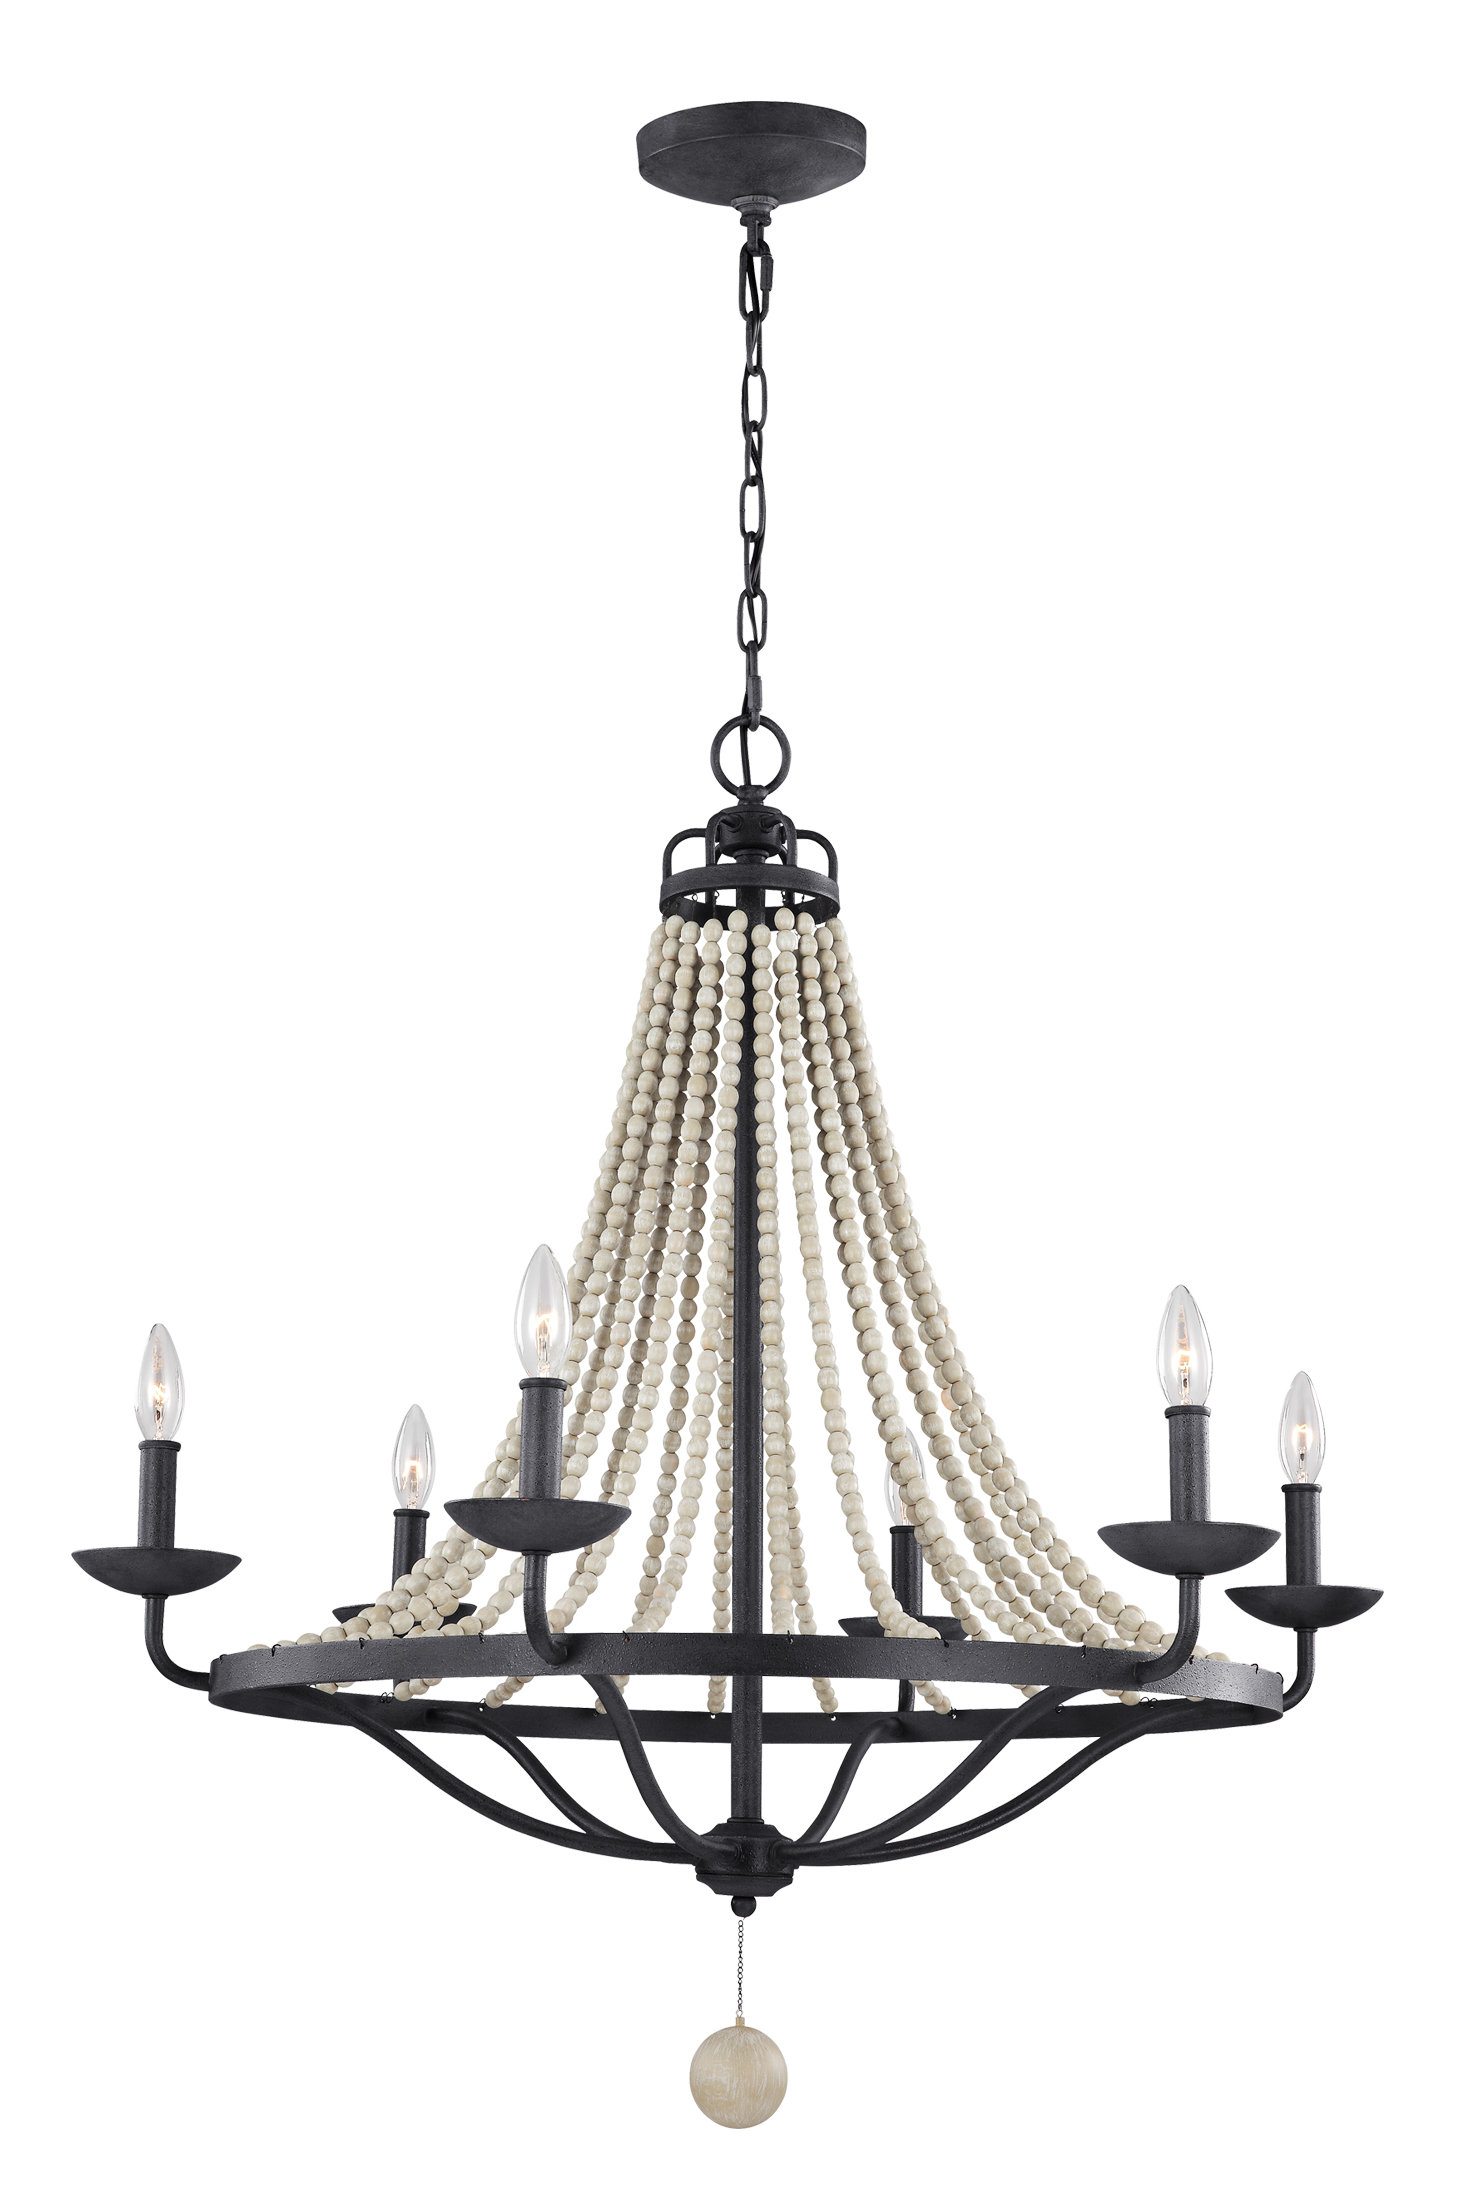 Diaz 6 Light Candle Style Chandeliers Intended For Favorite Granger 6 Light Empire Chandelier (Gallery 23 of 25)